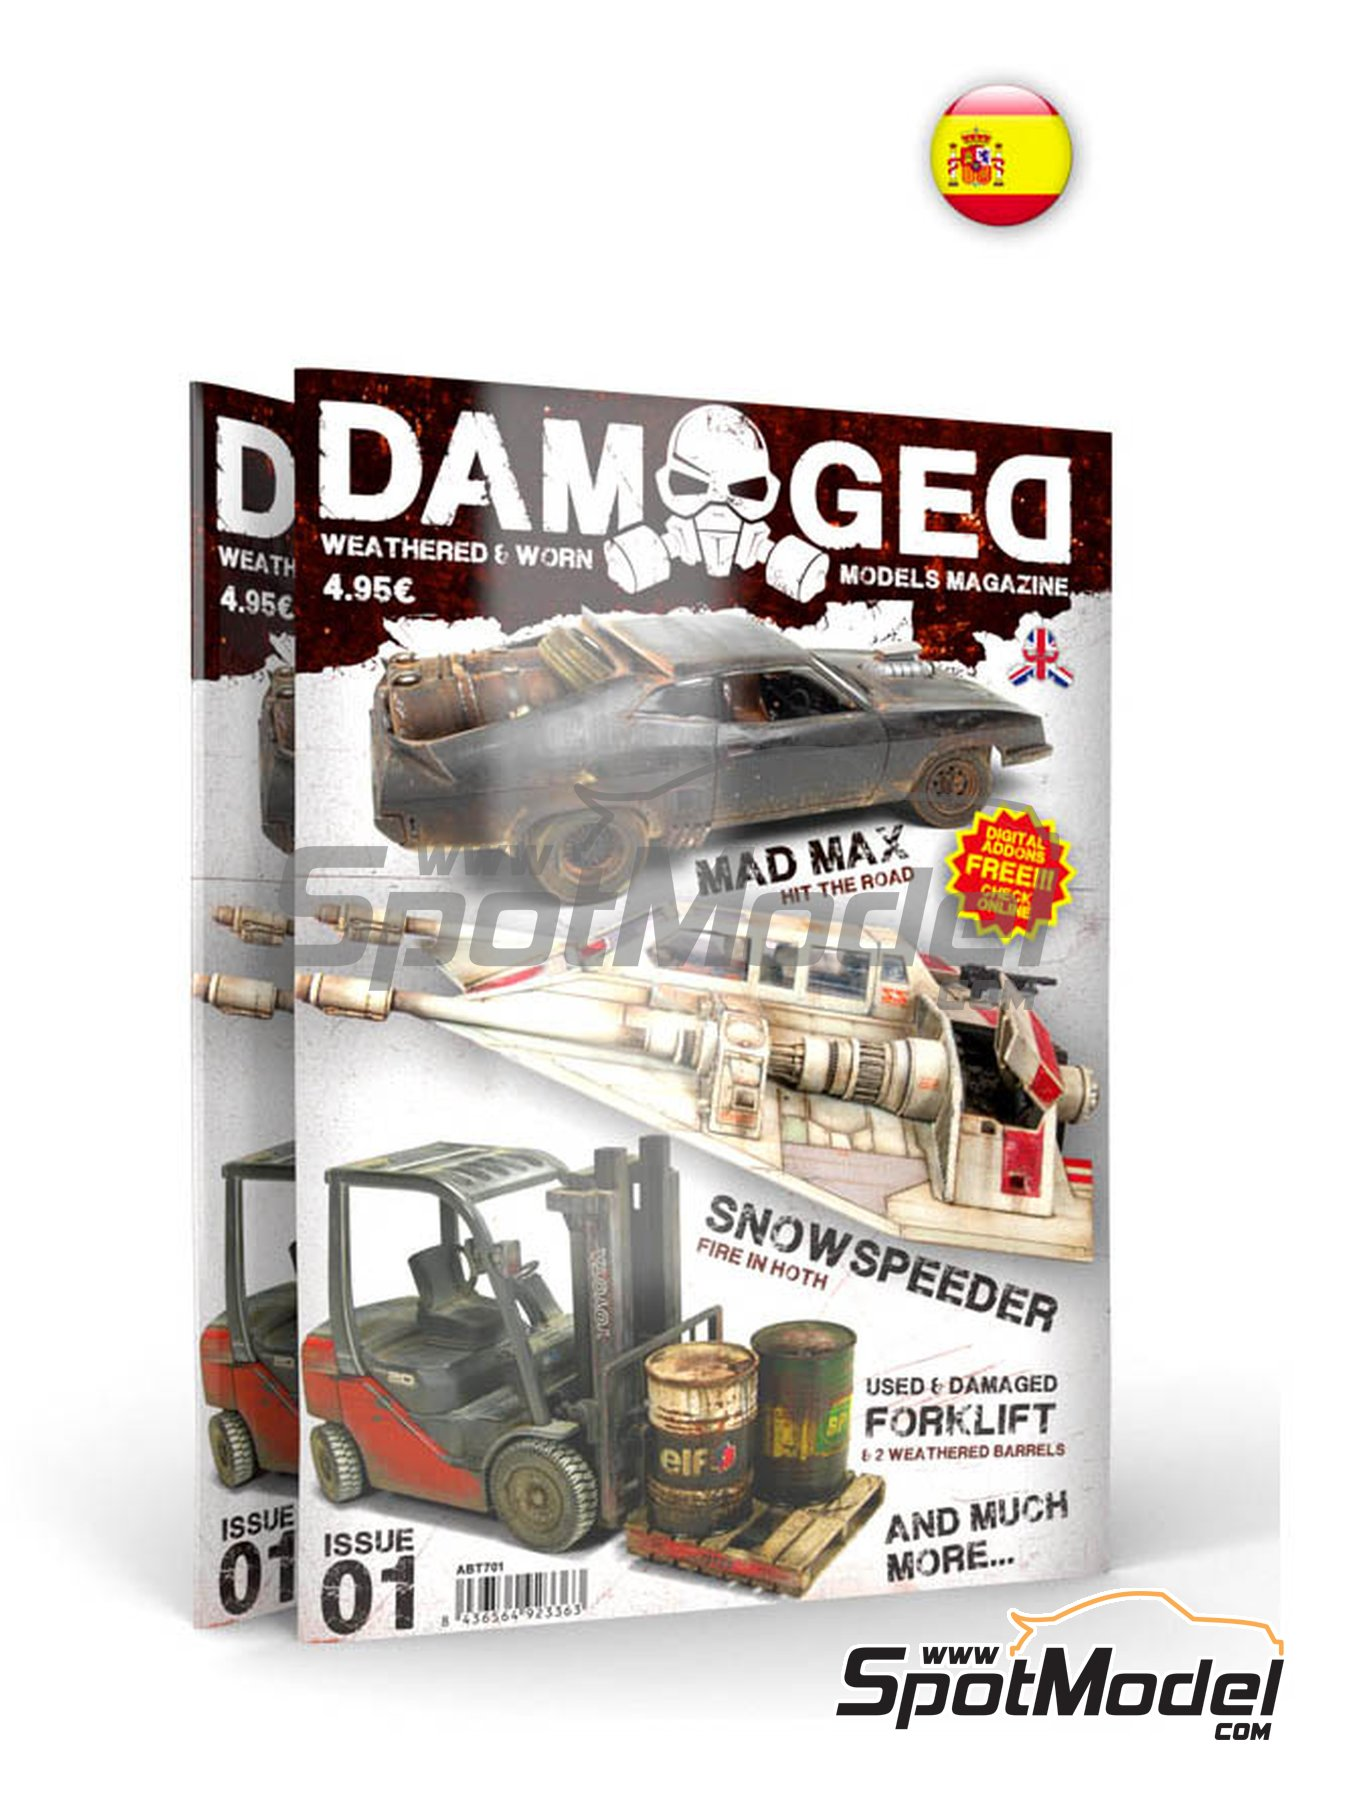 Damaged - Weathered and worn: Number 1 - spanish edition | Magazine manufactured by AK Interactive (ref. ABT702) image